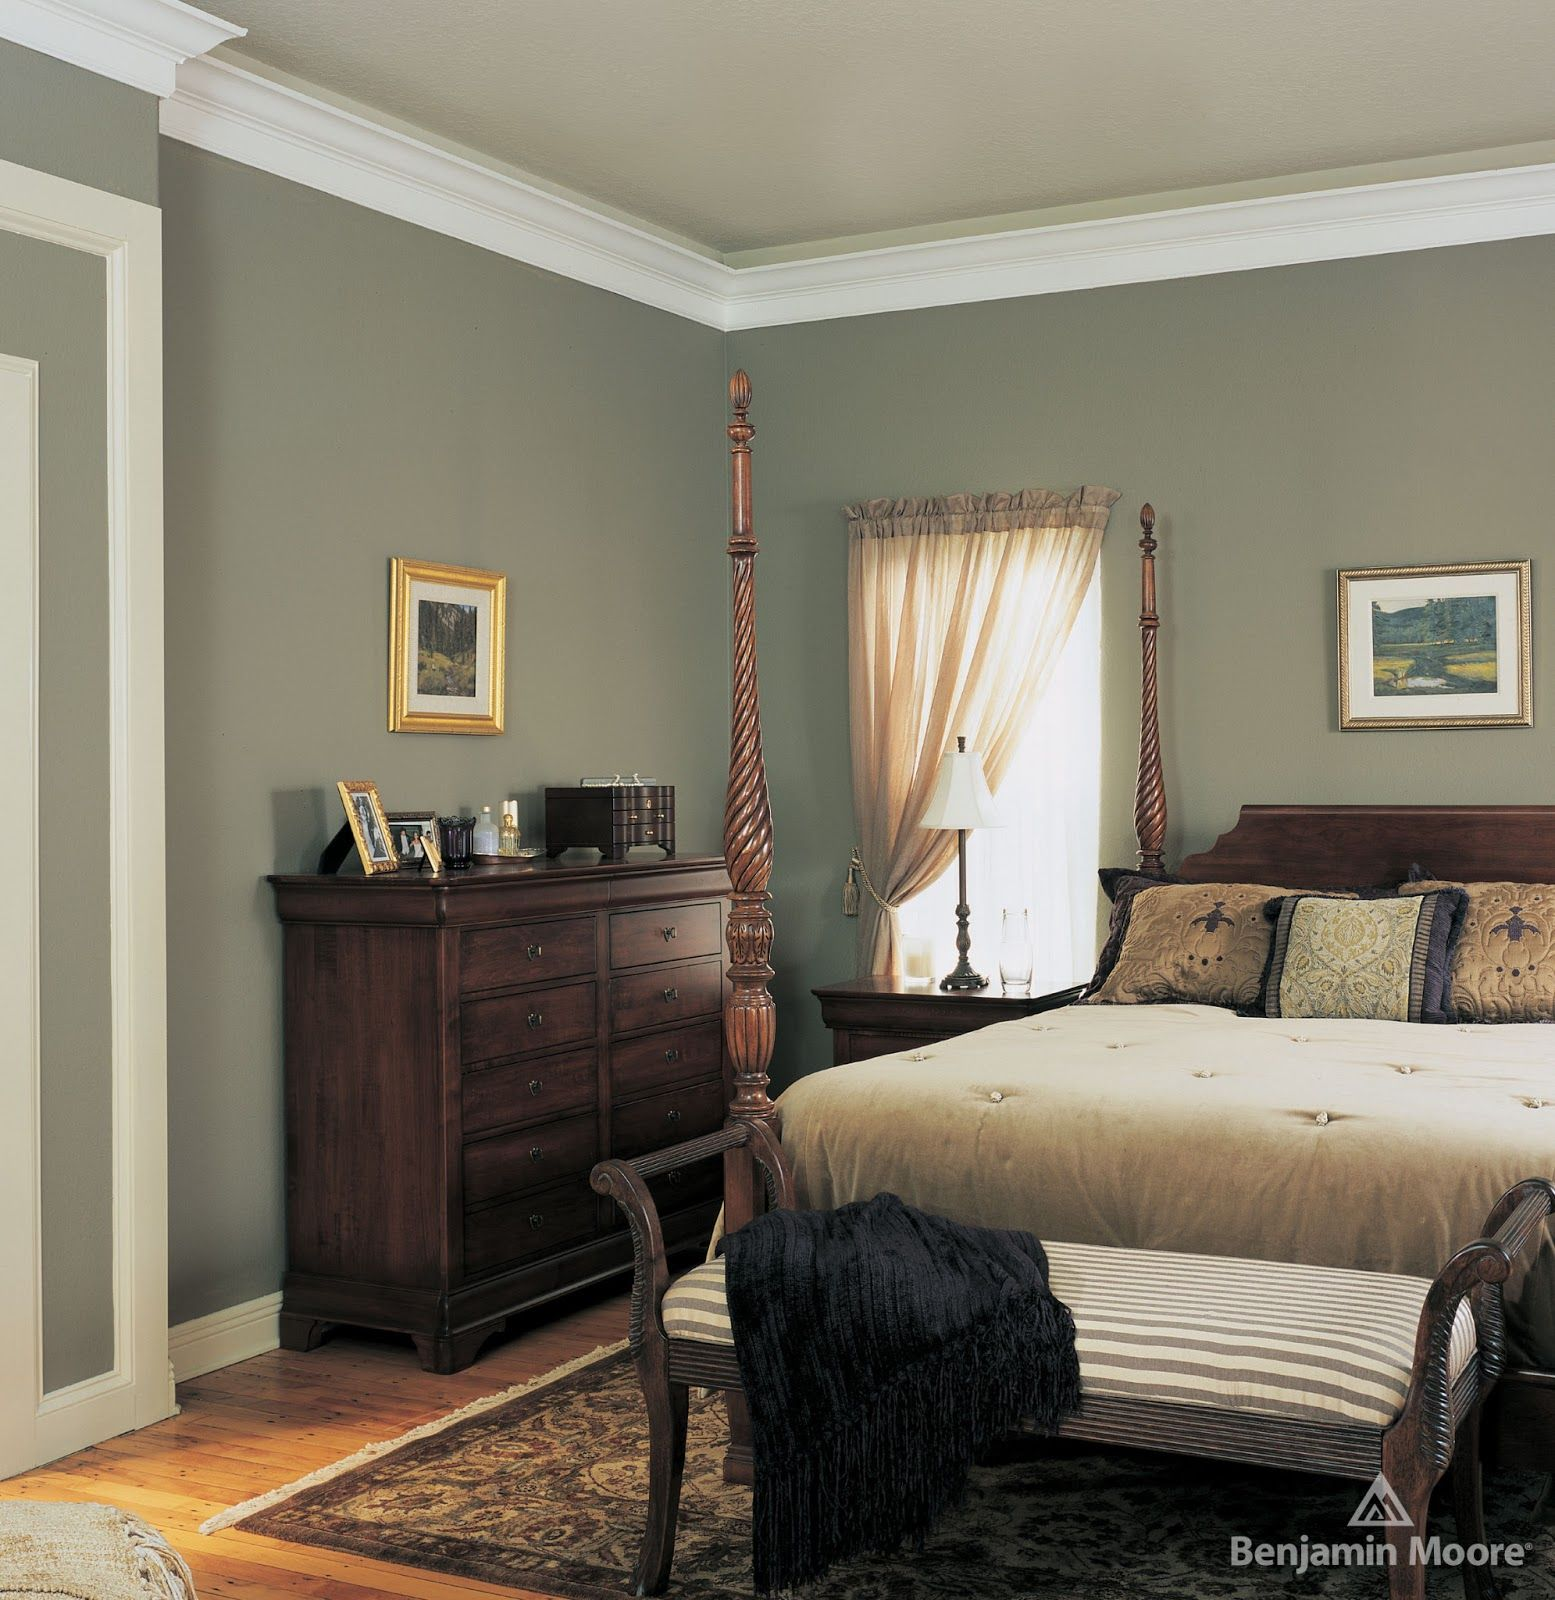 Lovely Factory Paint U0026 Decorating: Benjamin Moore Regal Select Interior Paint    Heather Gray Walls Idea